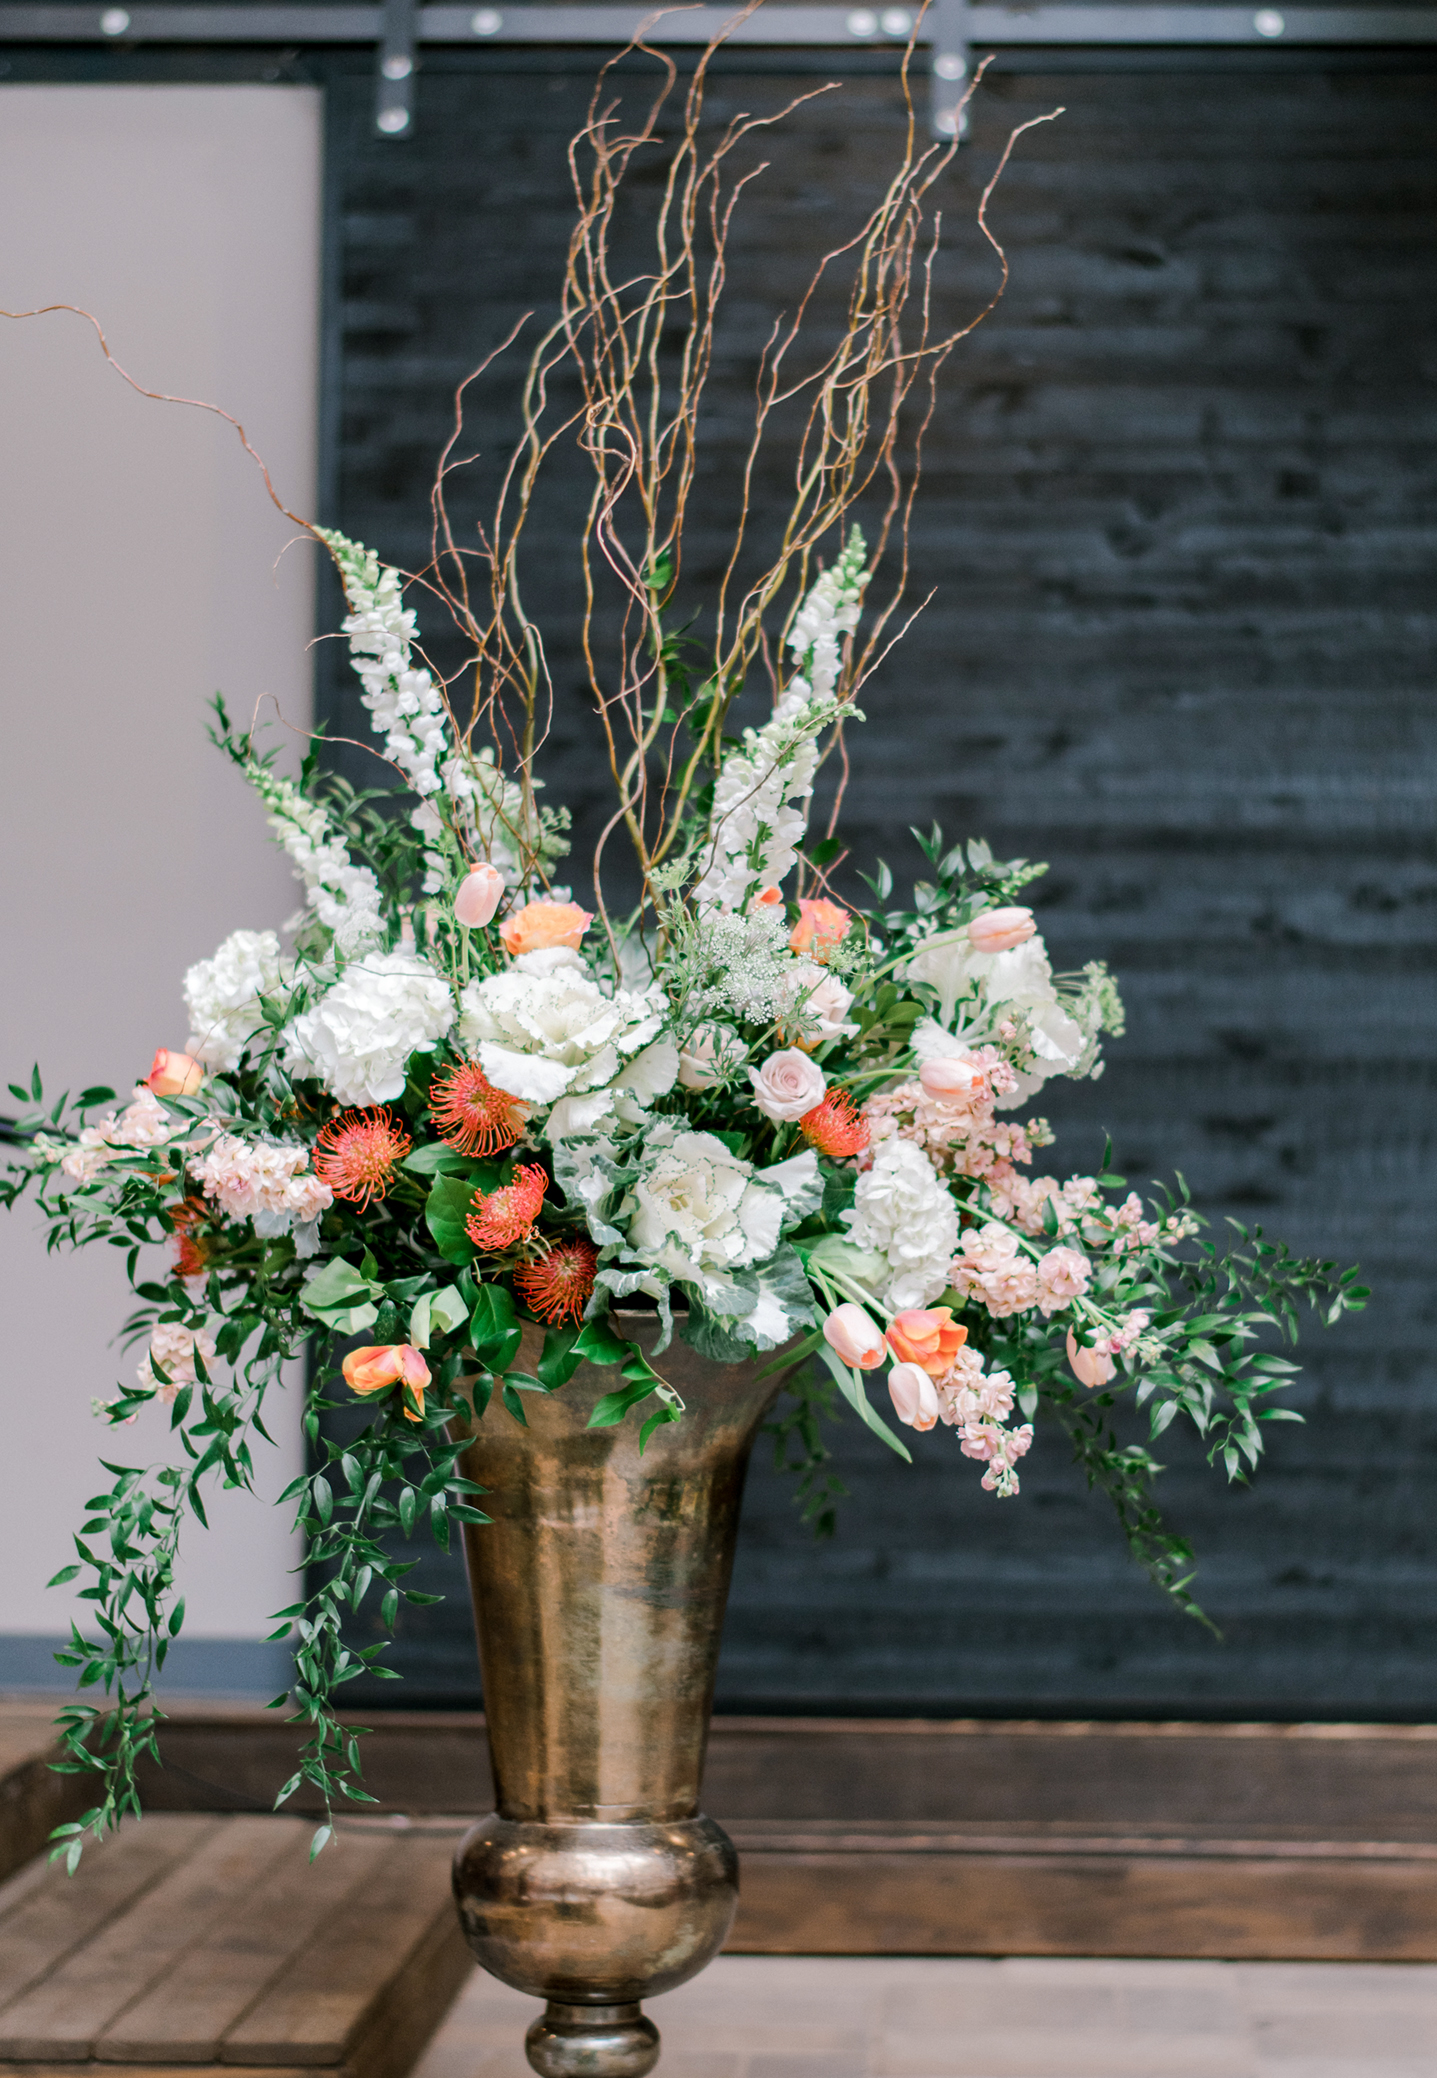 Unique wedding ceremony large scale floral arrangements in a spring palette of white, peach, green, with bright orange accents. Designed in massive bronze urns for a chic urban wedding.